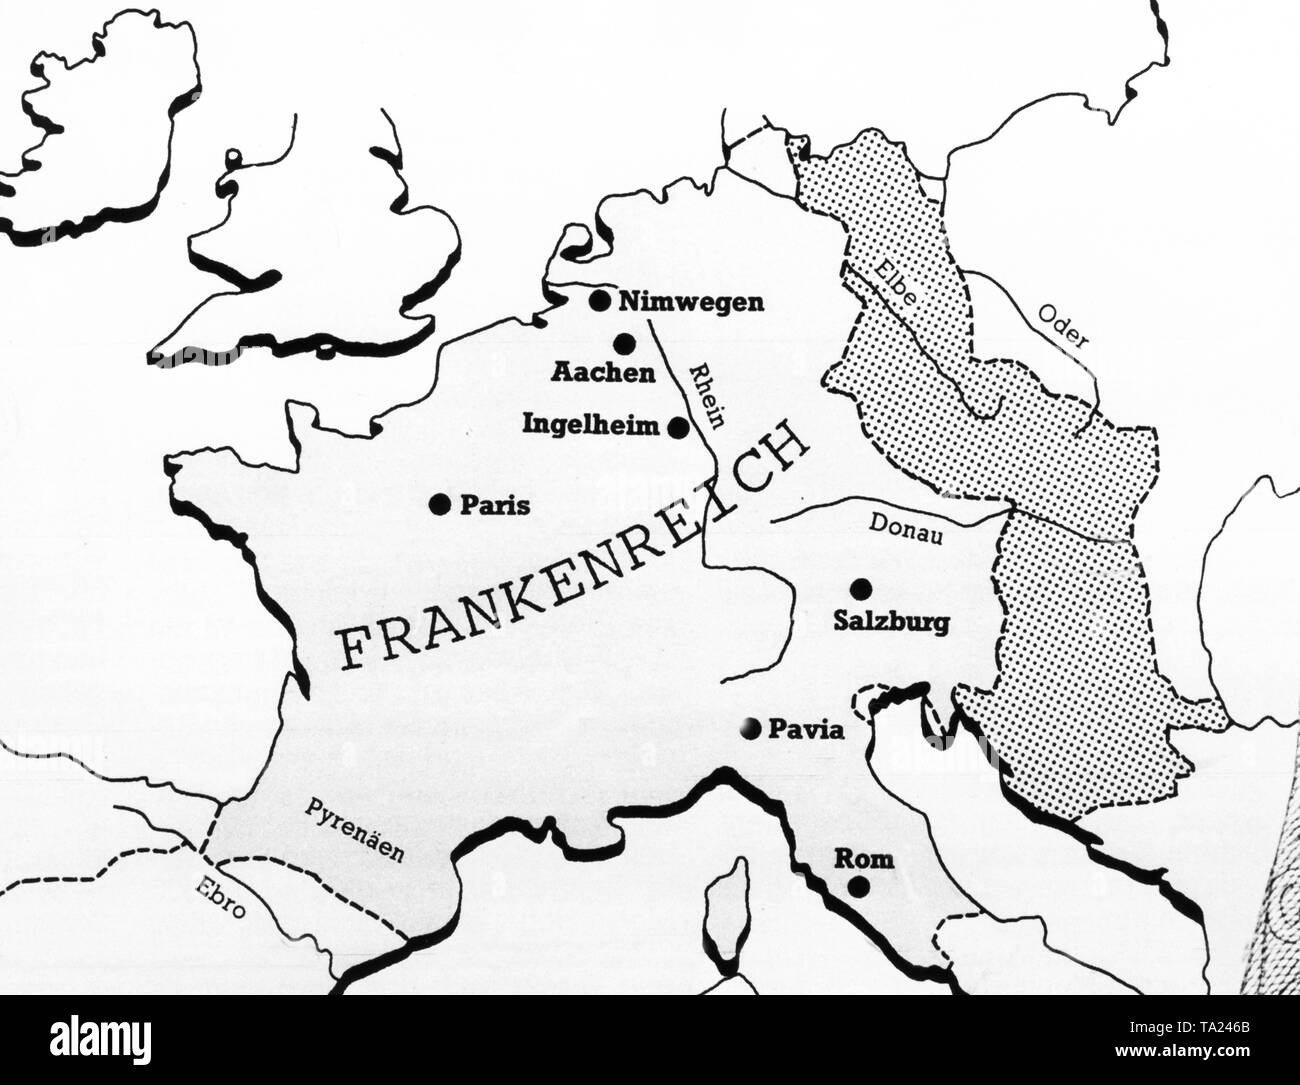 Under Charles the Great the Franconian Empire rose to one of the world powers. The dotted area indicates the tributary areas of Slavic tribes. Under Charlemagne, the entire empire, has an extension of 1.3 mil. square kilometre. - Stock Image